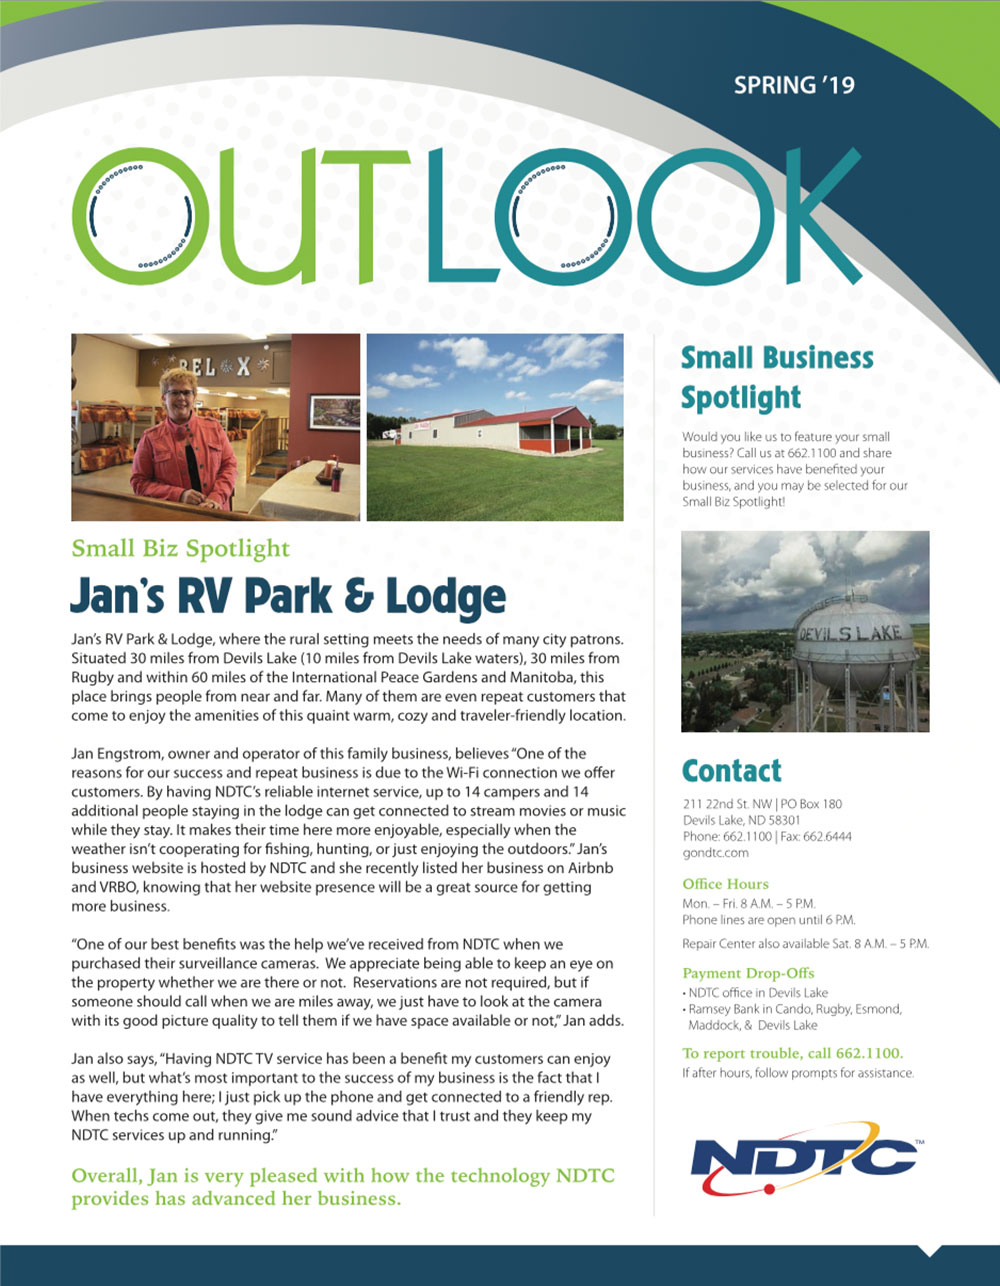 Spring 2019 Outlook Newsletter Preview